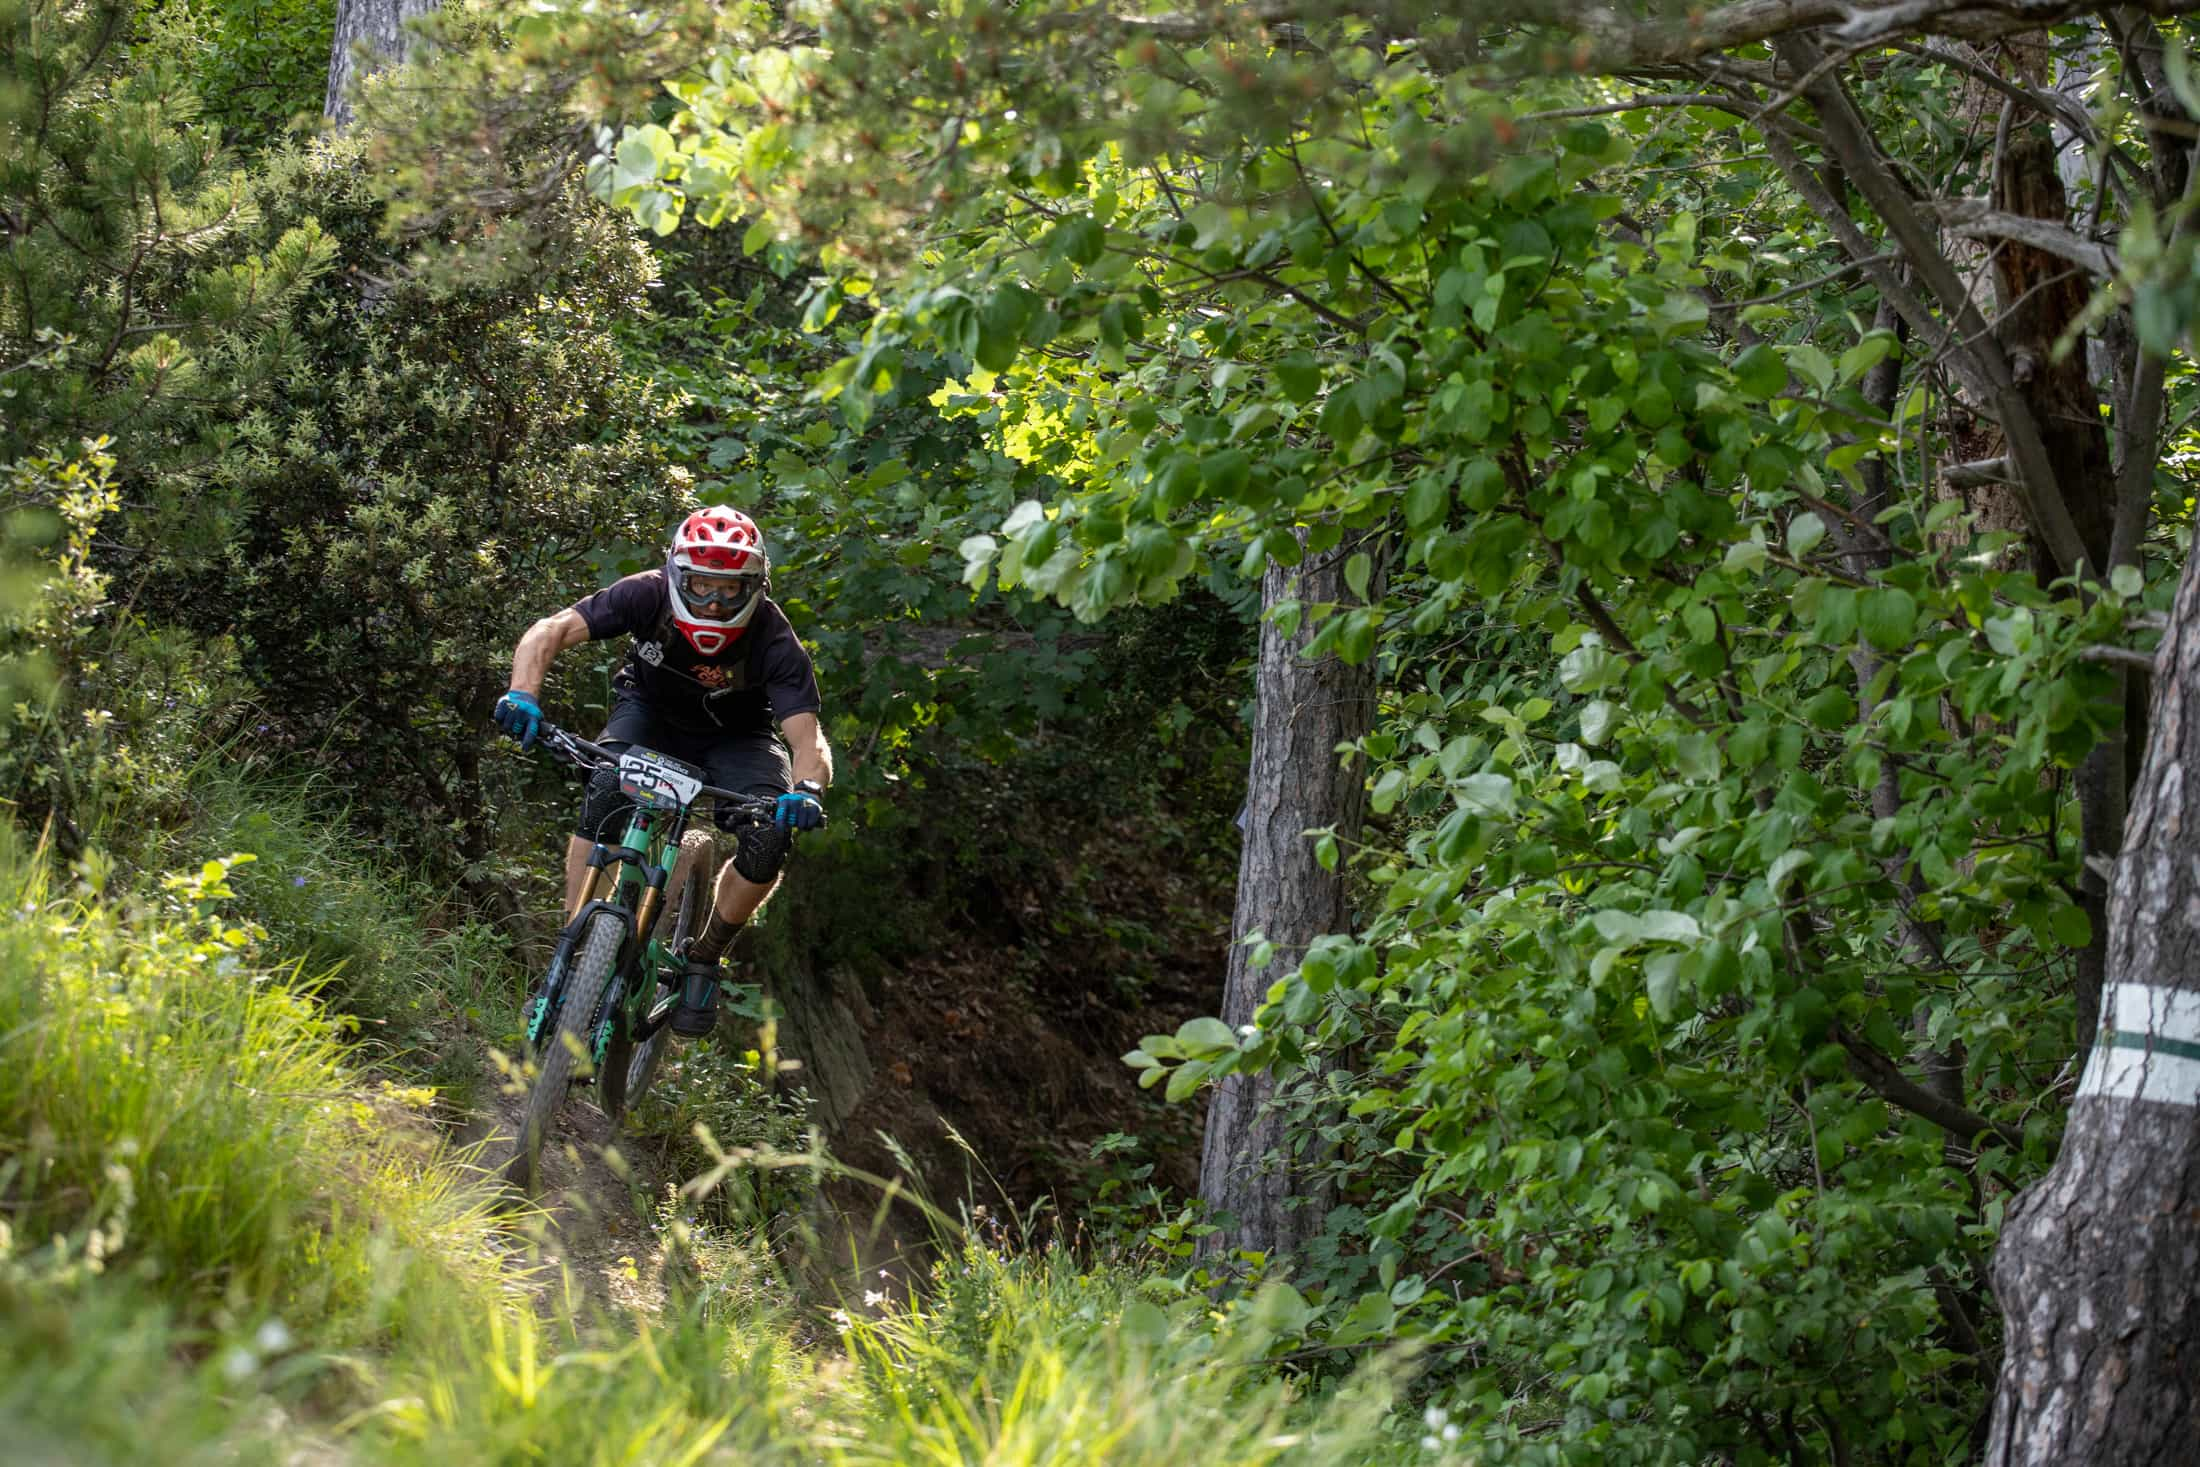 Santa Cruz Bicycles - Day 4 of the 2019 Trans-Provence